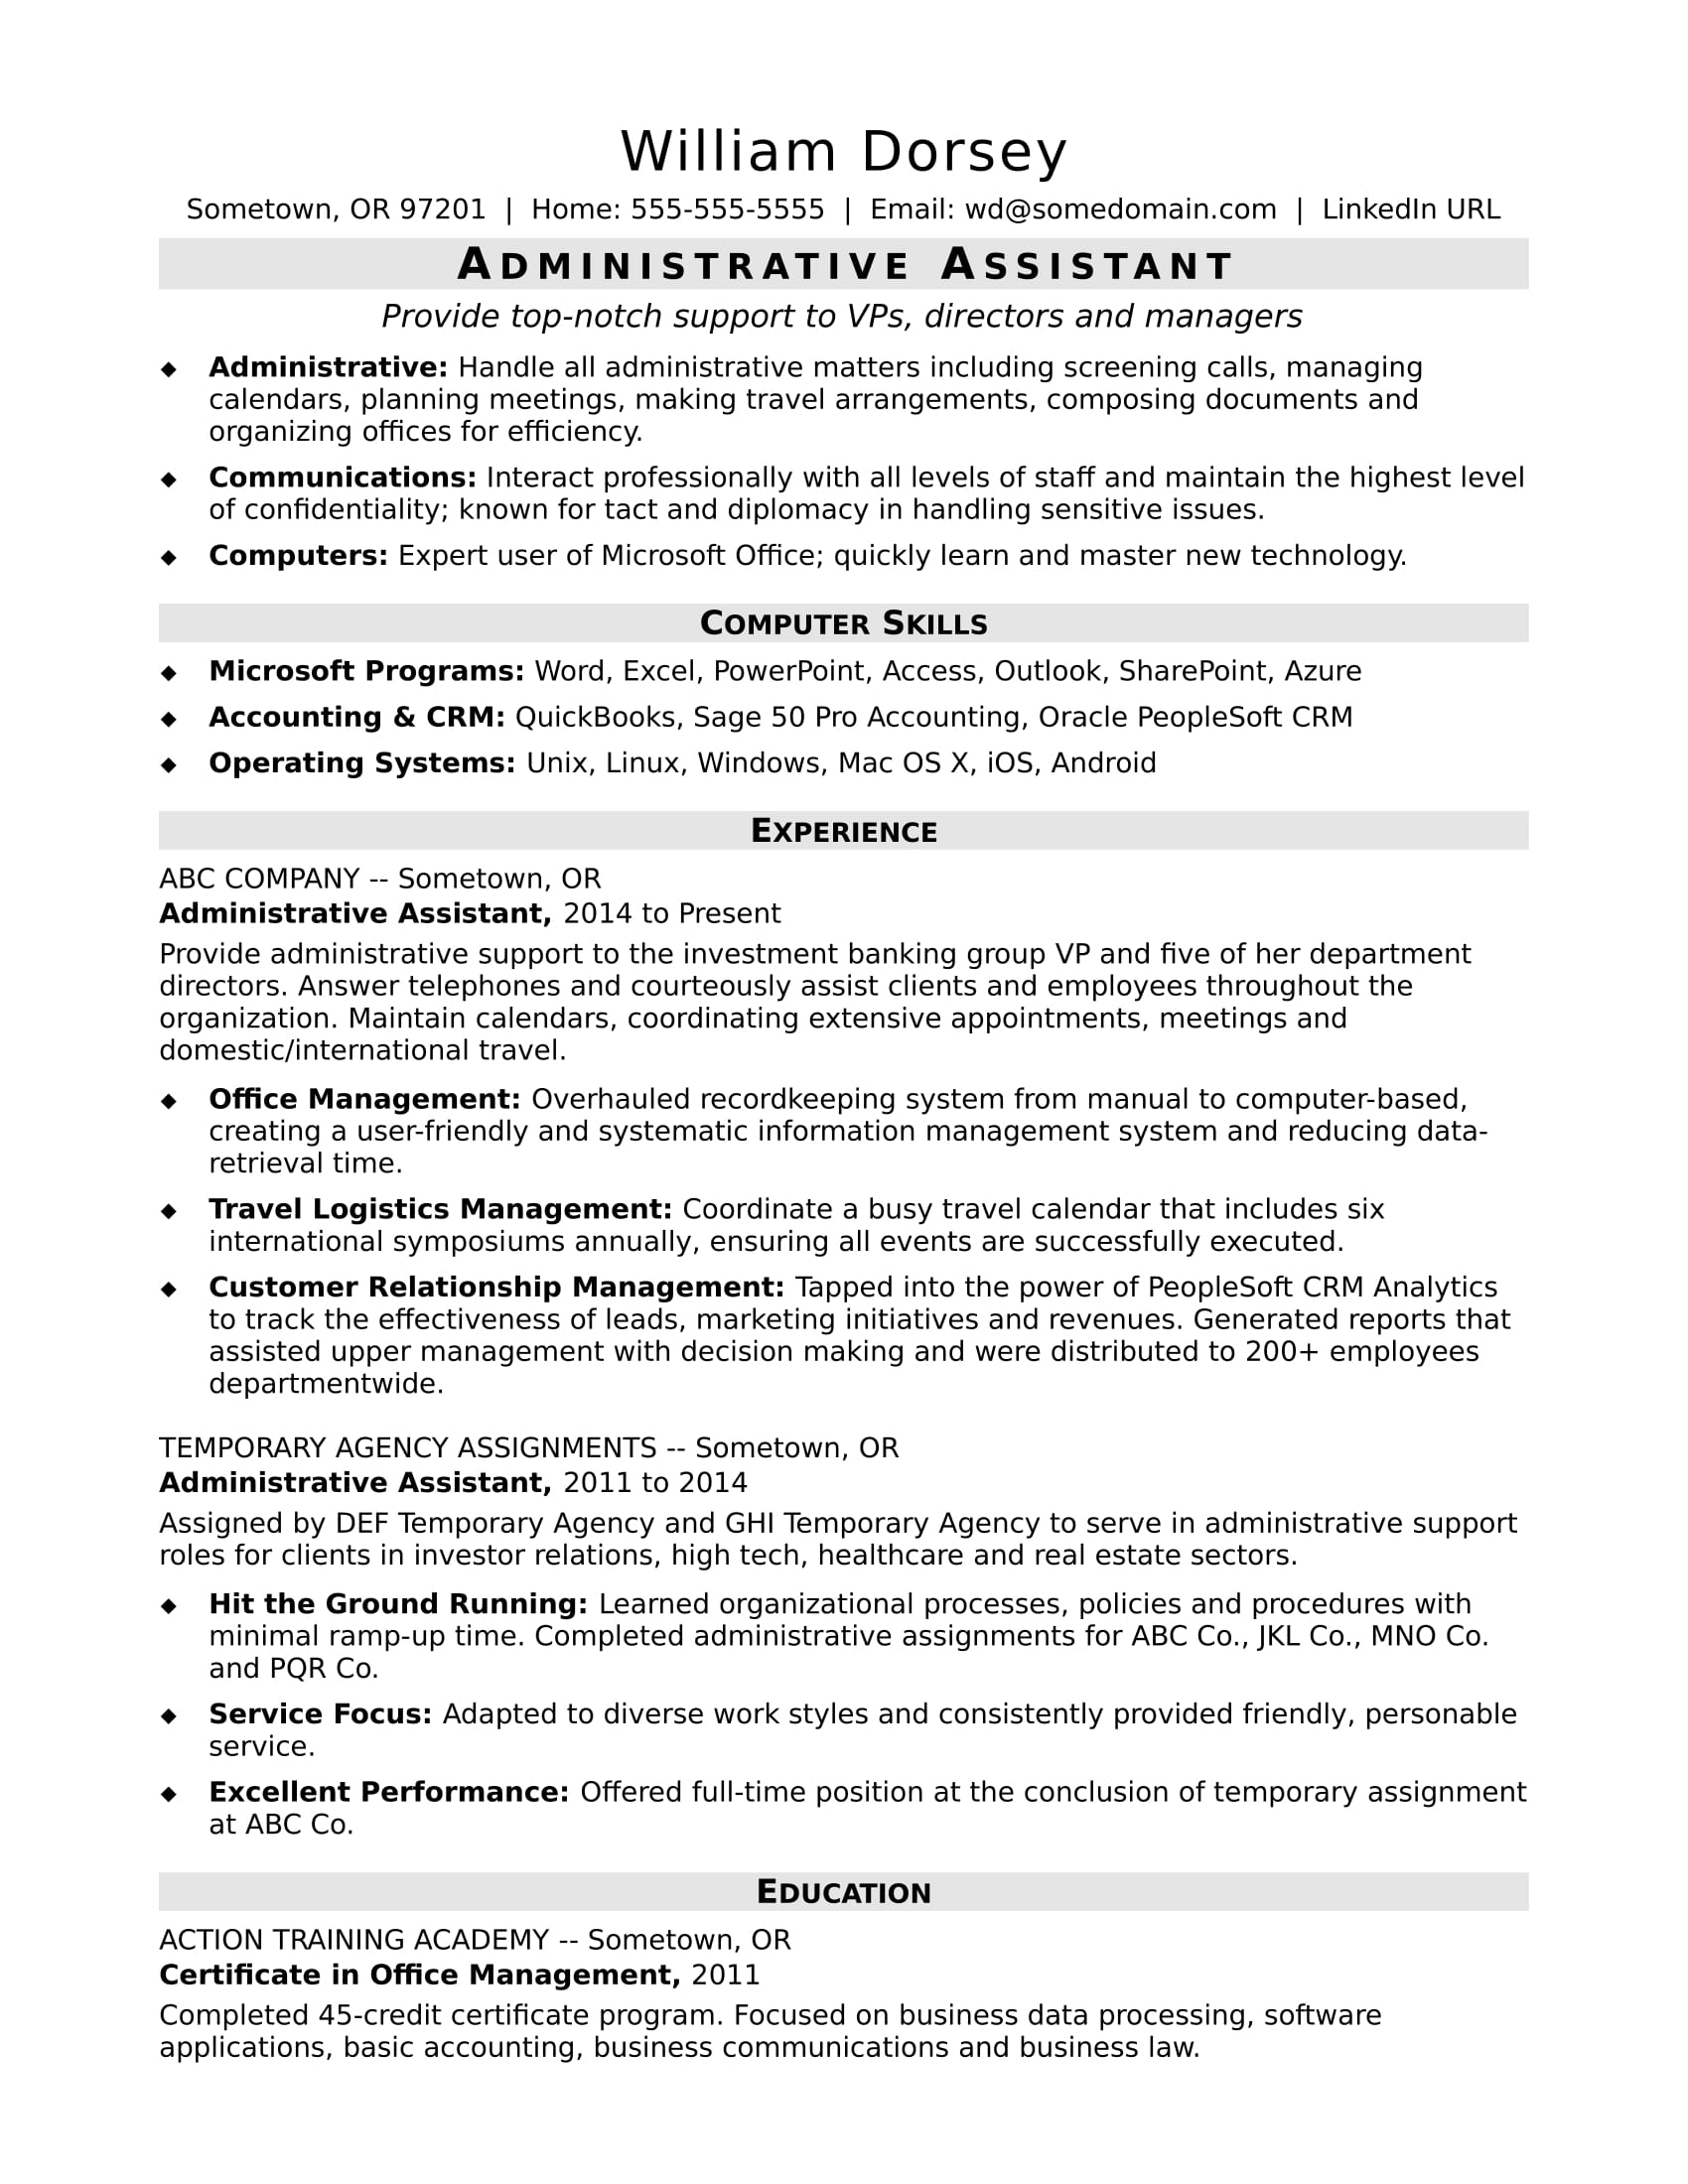 Sample Resume For A Midlevel Administrative Assistant  Office Management Resume